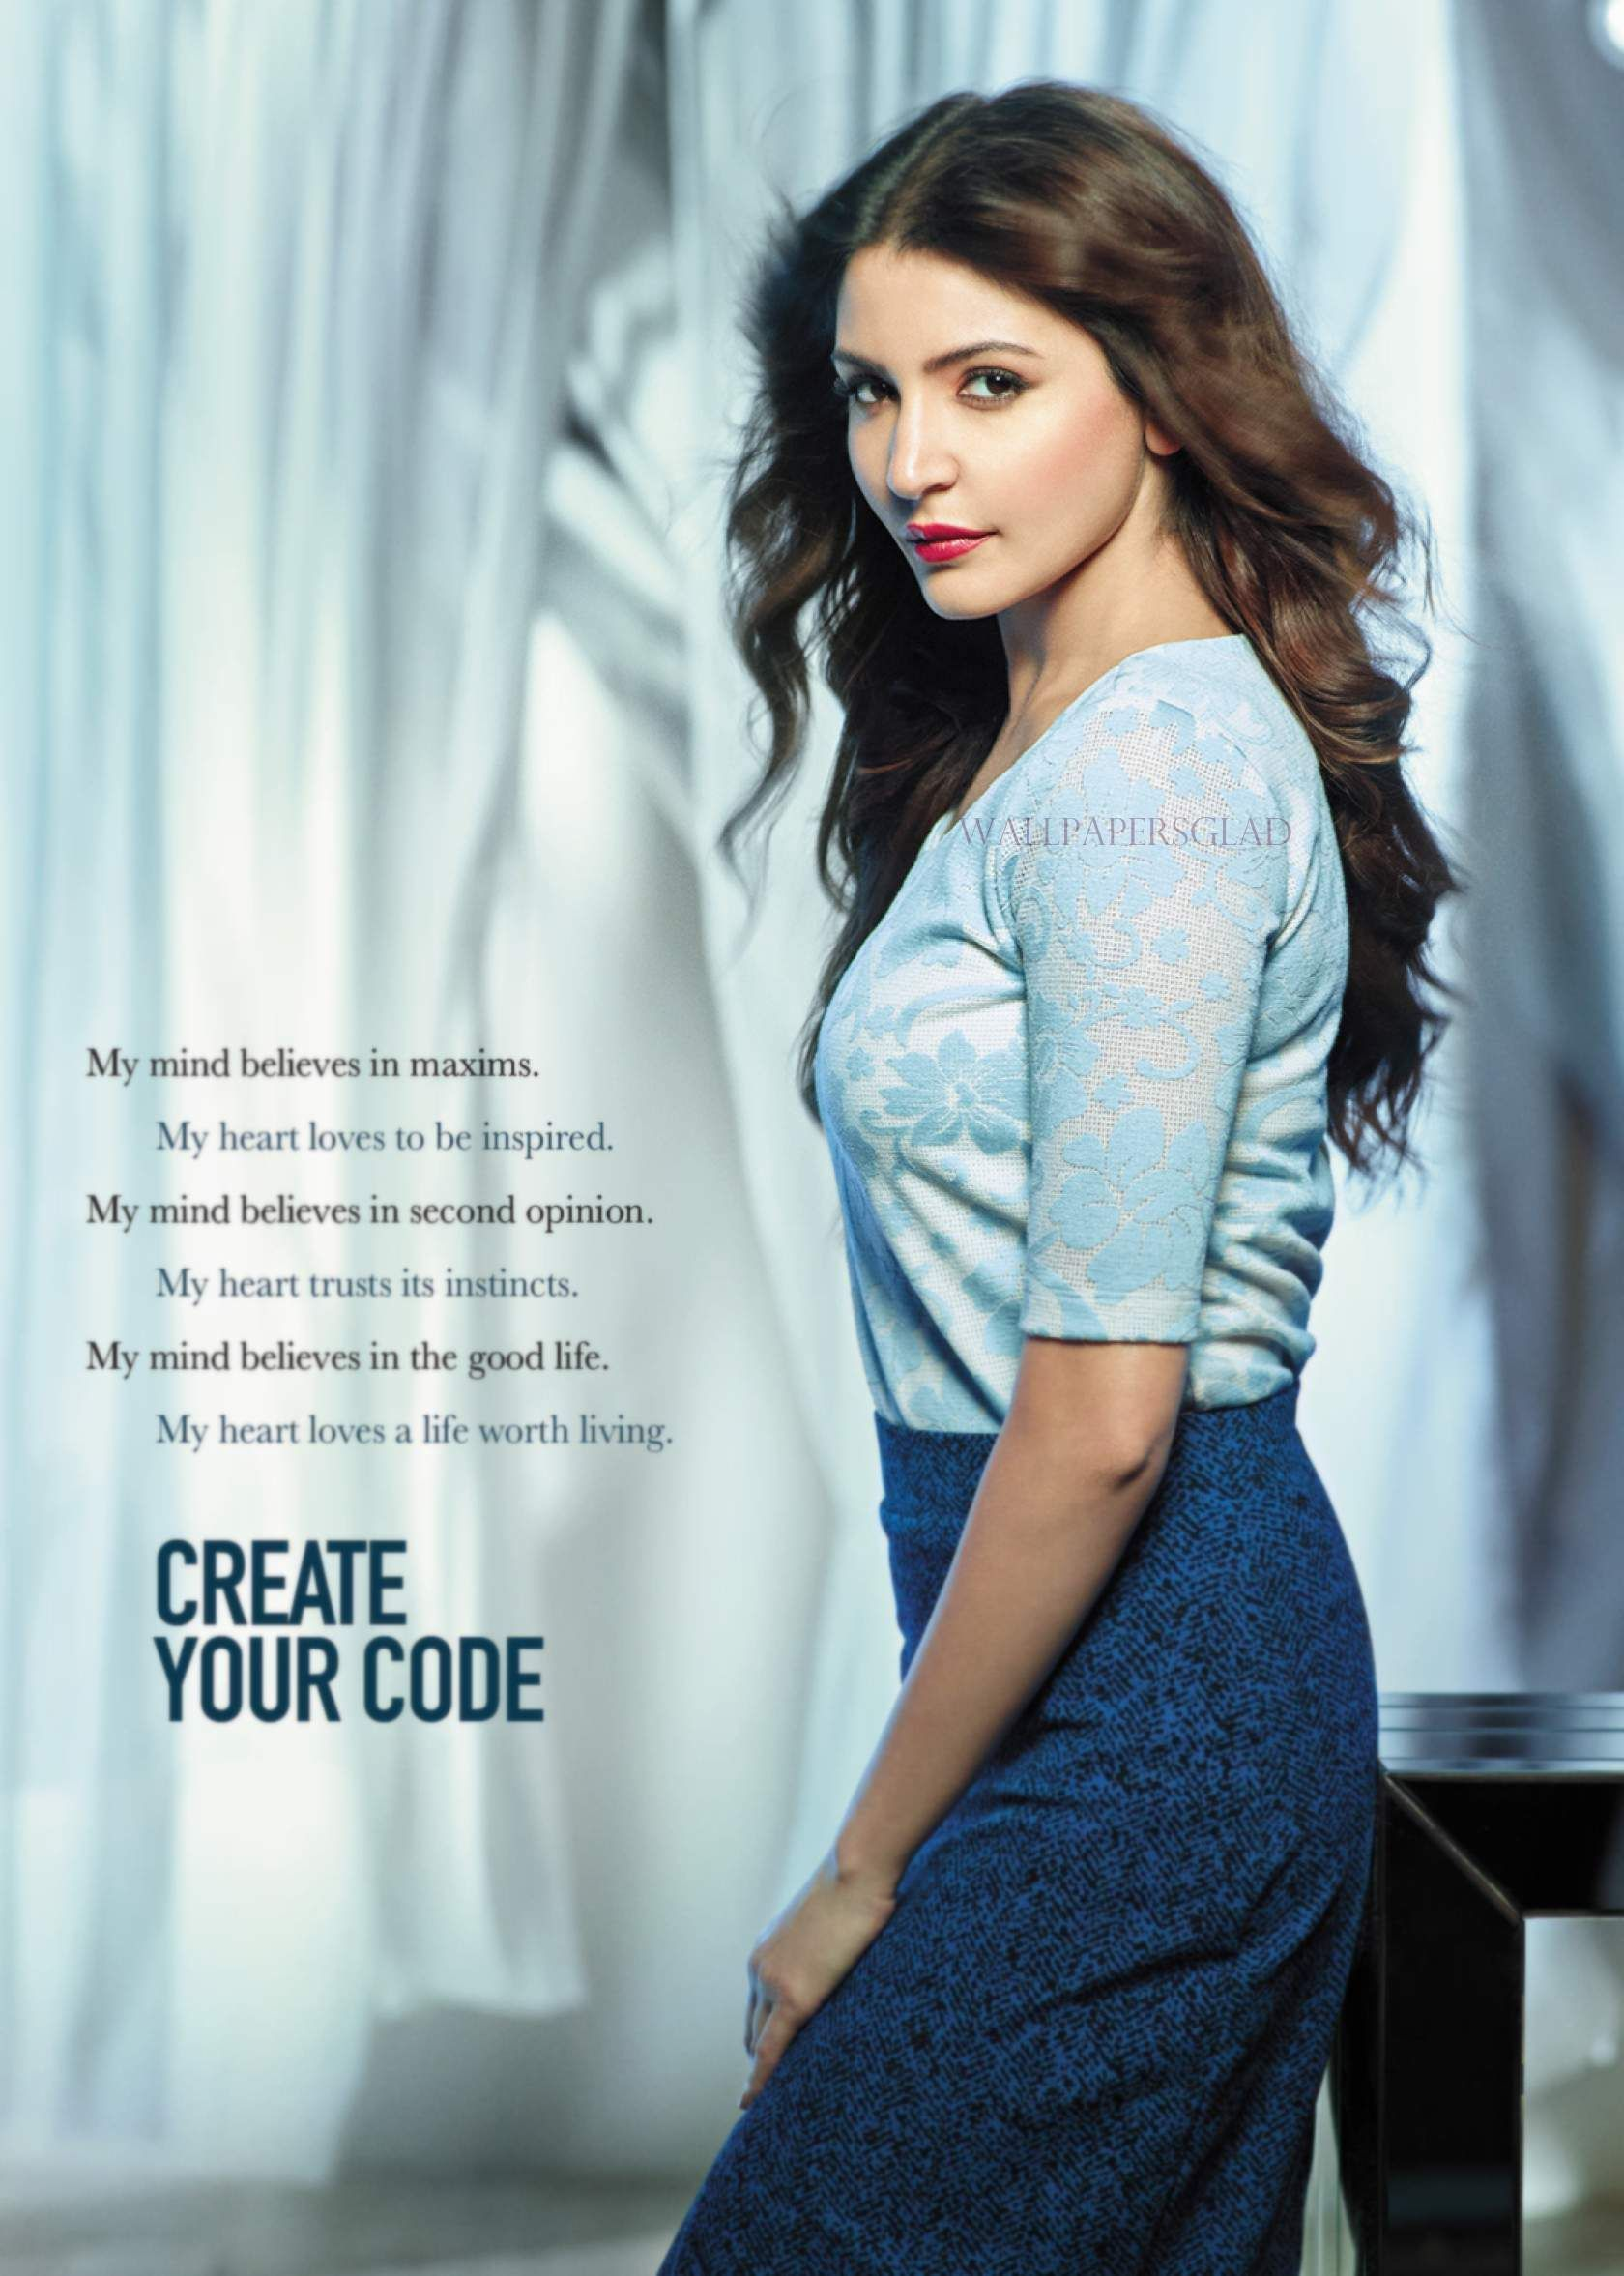 anushka sharma codelifestyle photoshoot hd images | wallpapers